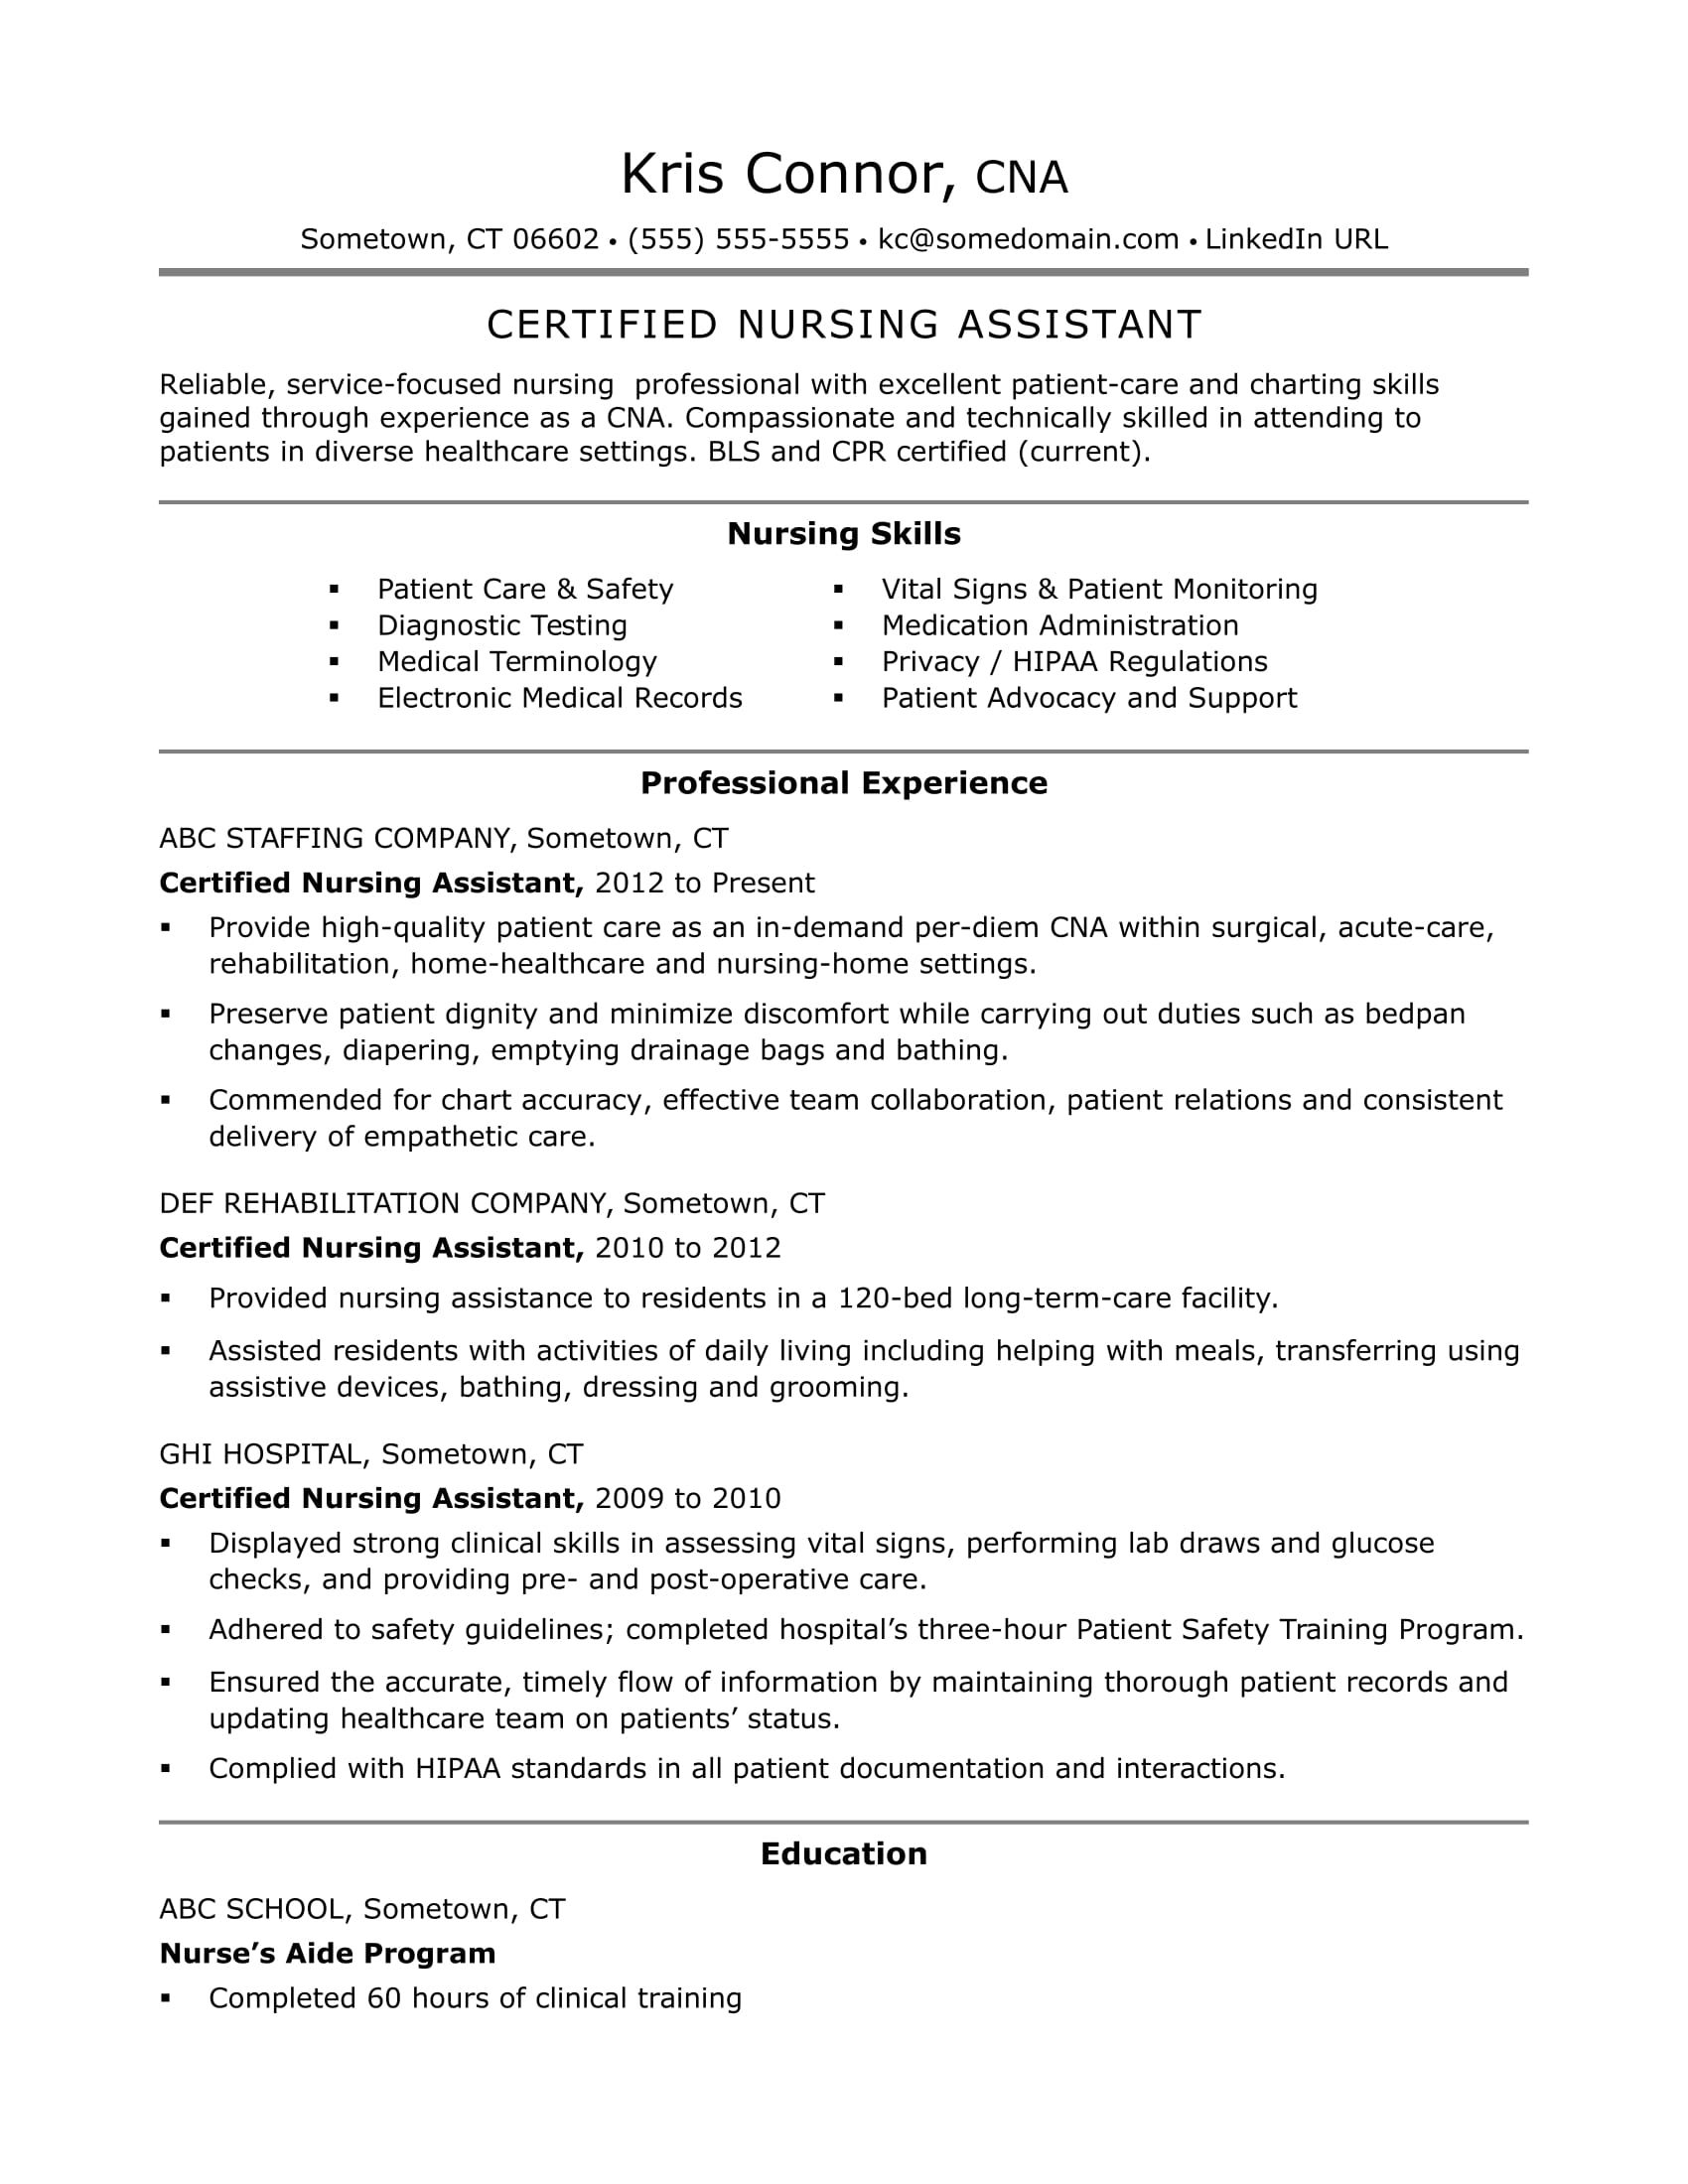 Cna resume examples skills for cnas monster cna resume example madrichimfo Gallery